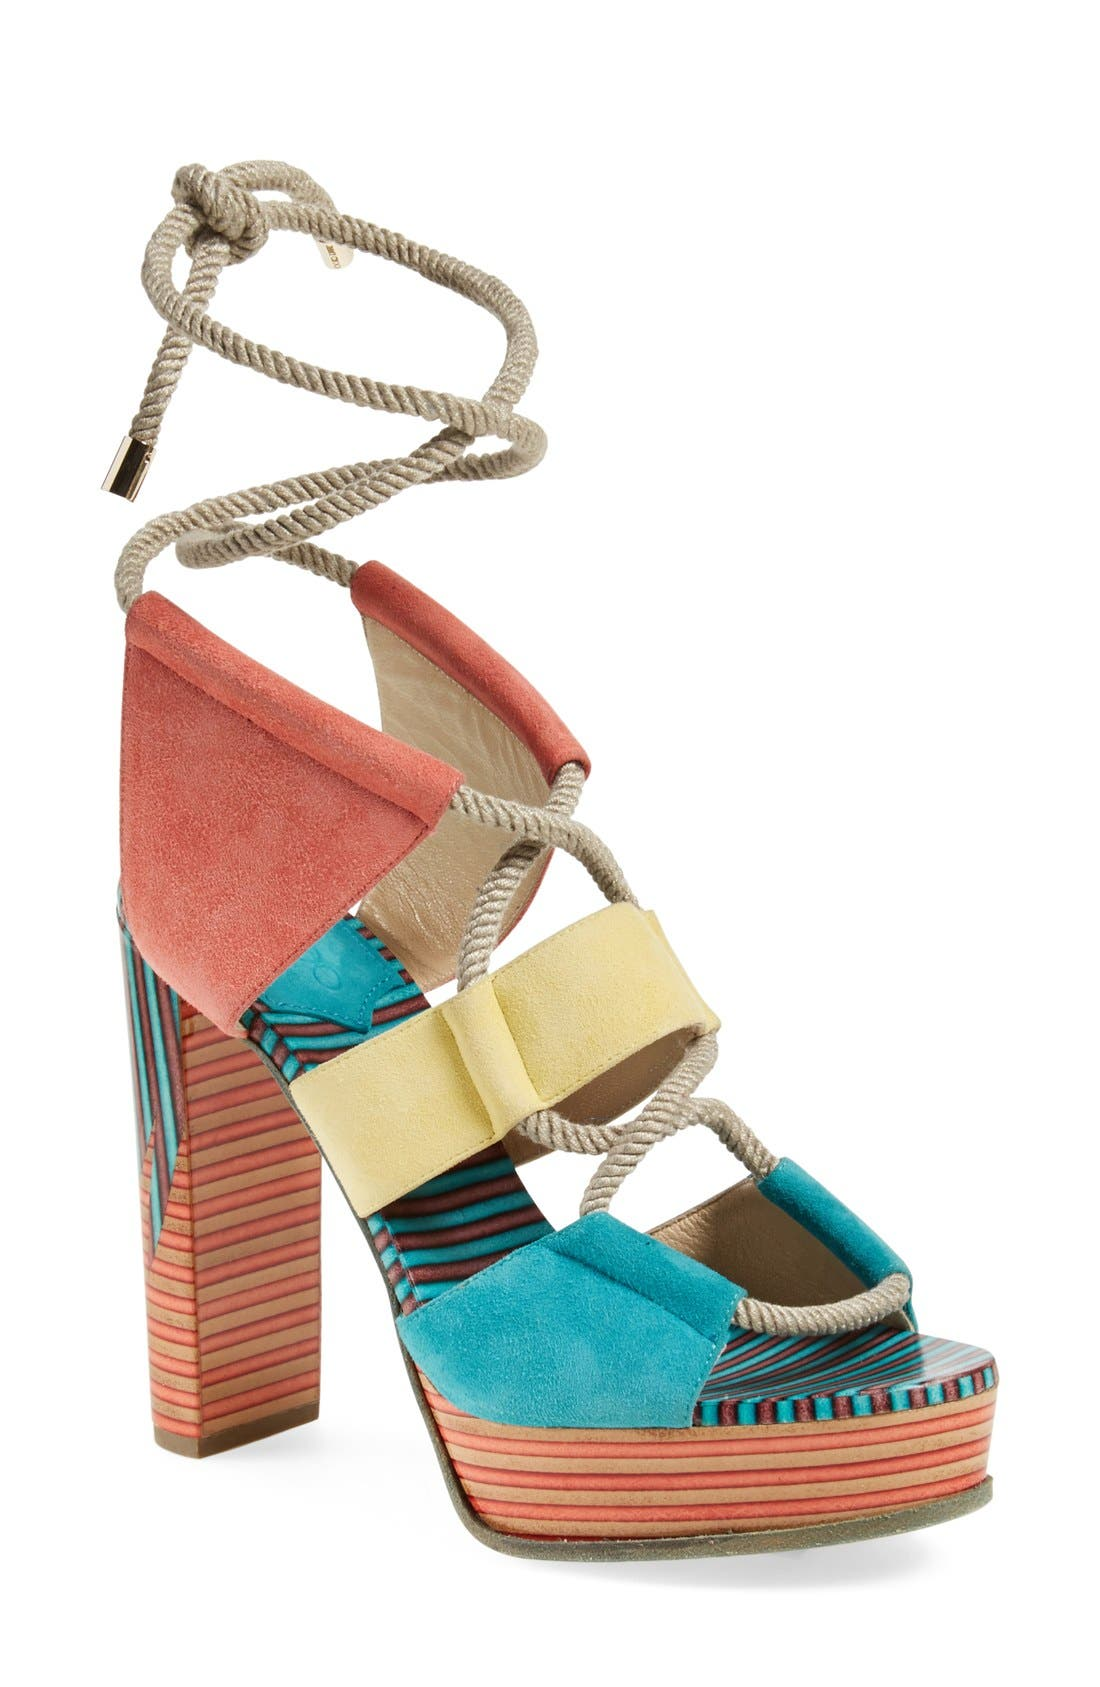 JIMMY CHOO, 'Halley' Platform Sandal, Main thumbnail 1, color, 400